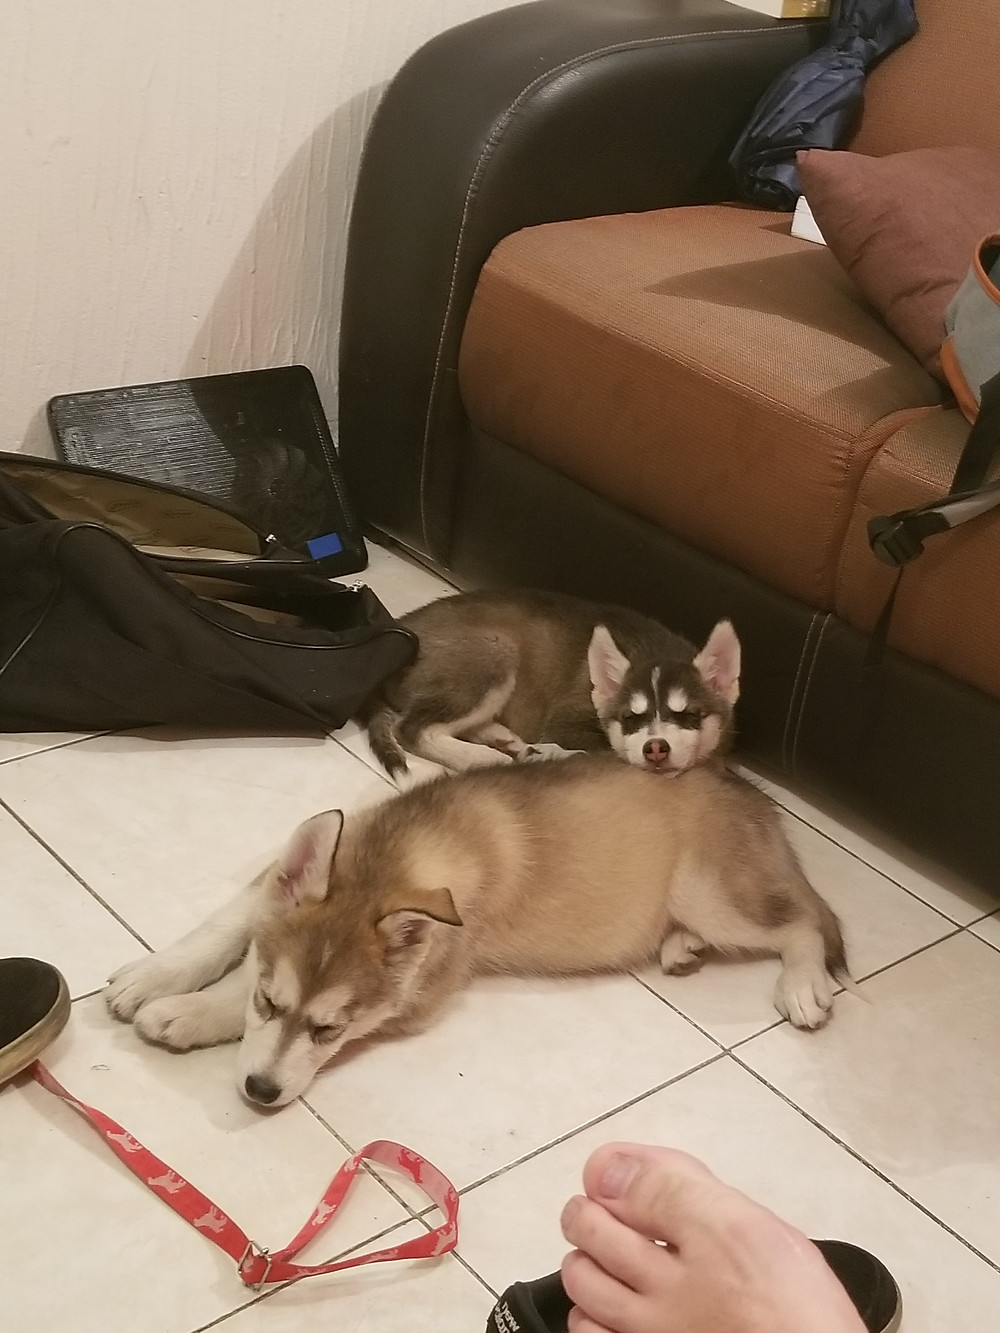 Animal and Akira; all pooped out after a day of destruction